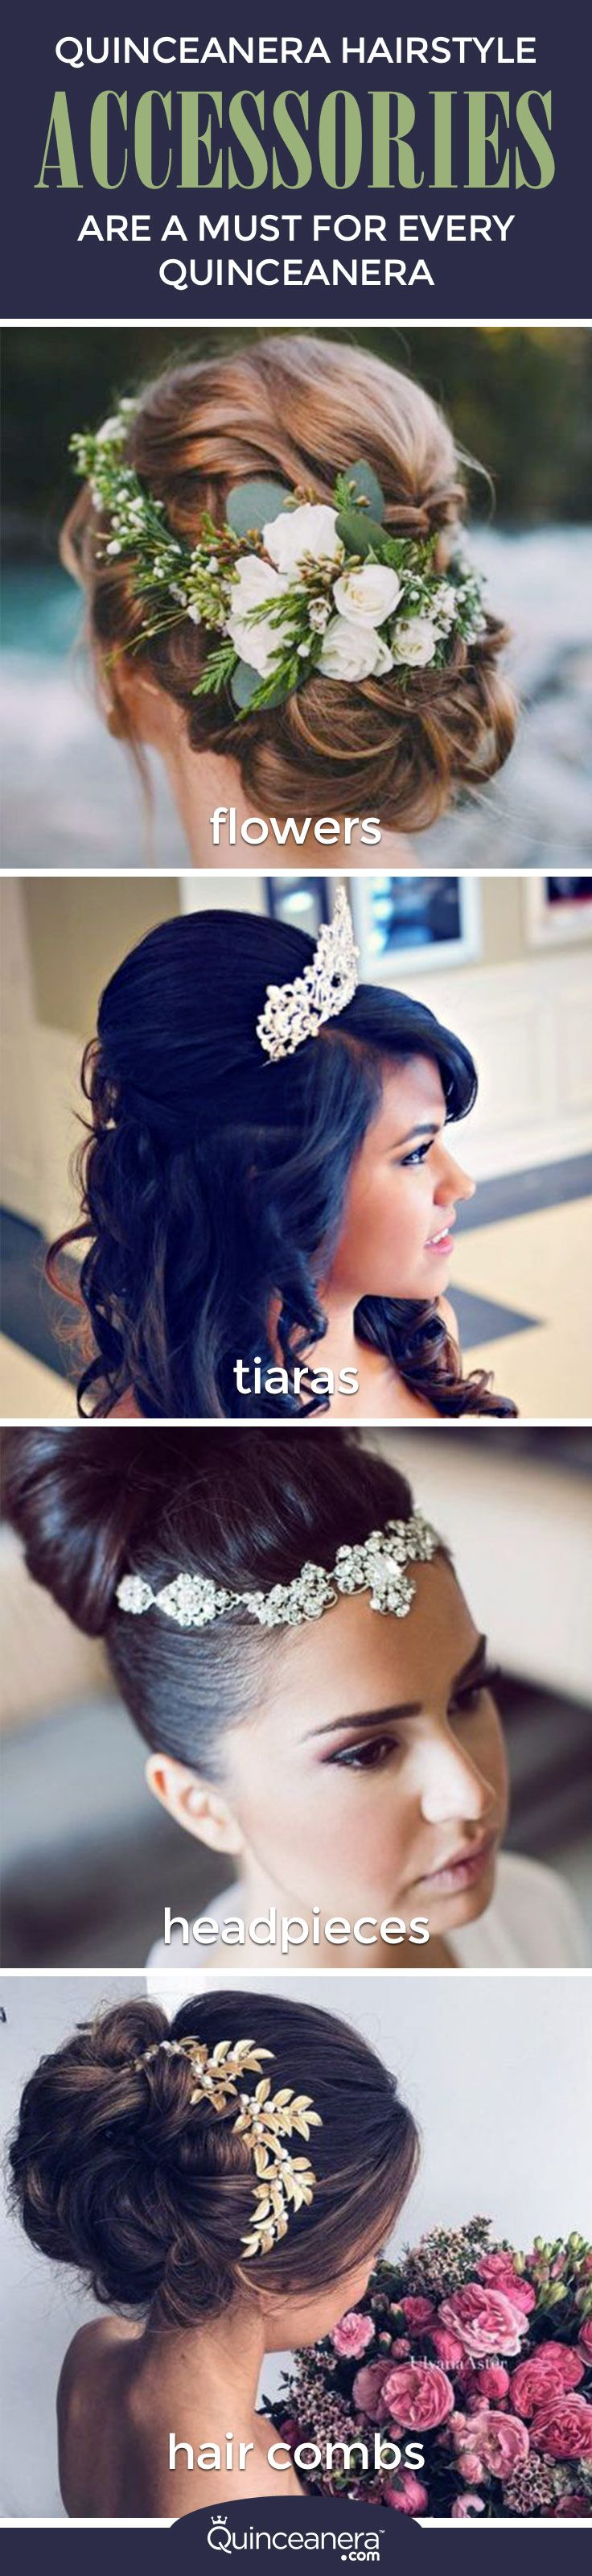 Quinceanera Hair Accessories: Take Your Hairstyle to the Next Level! - Quinceanera